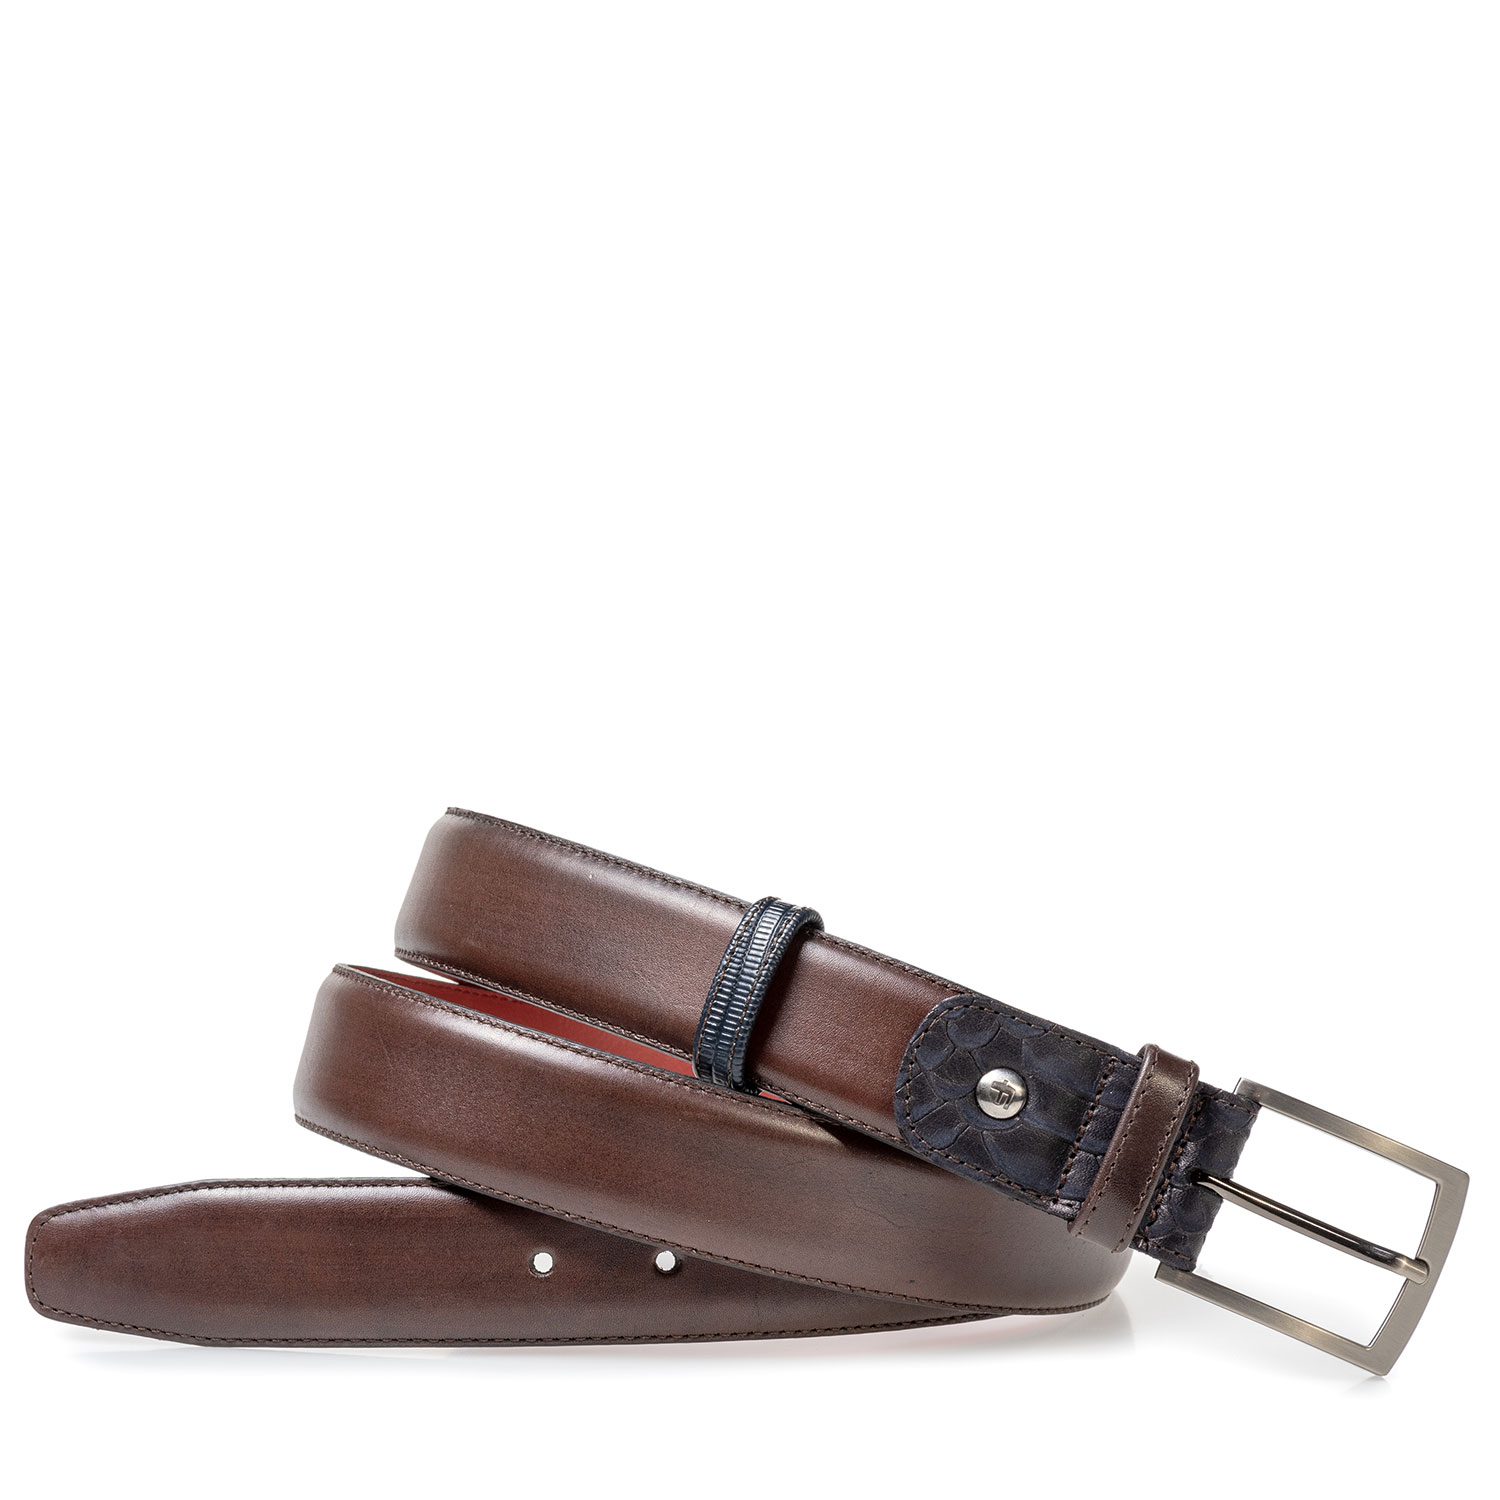 75160/02 - Dark brown leather belt